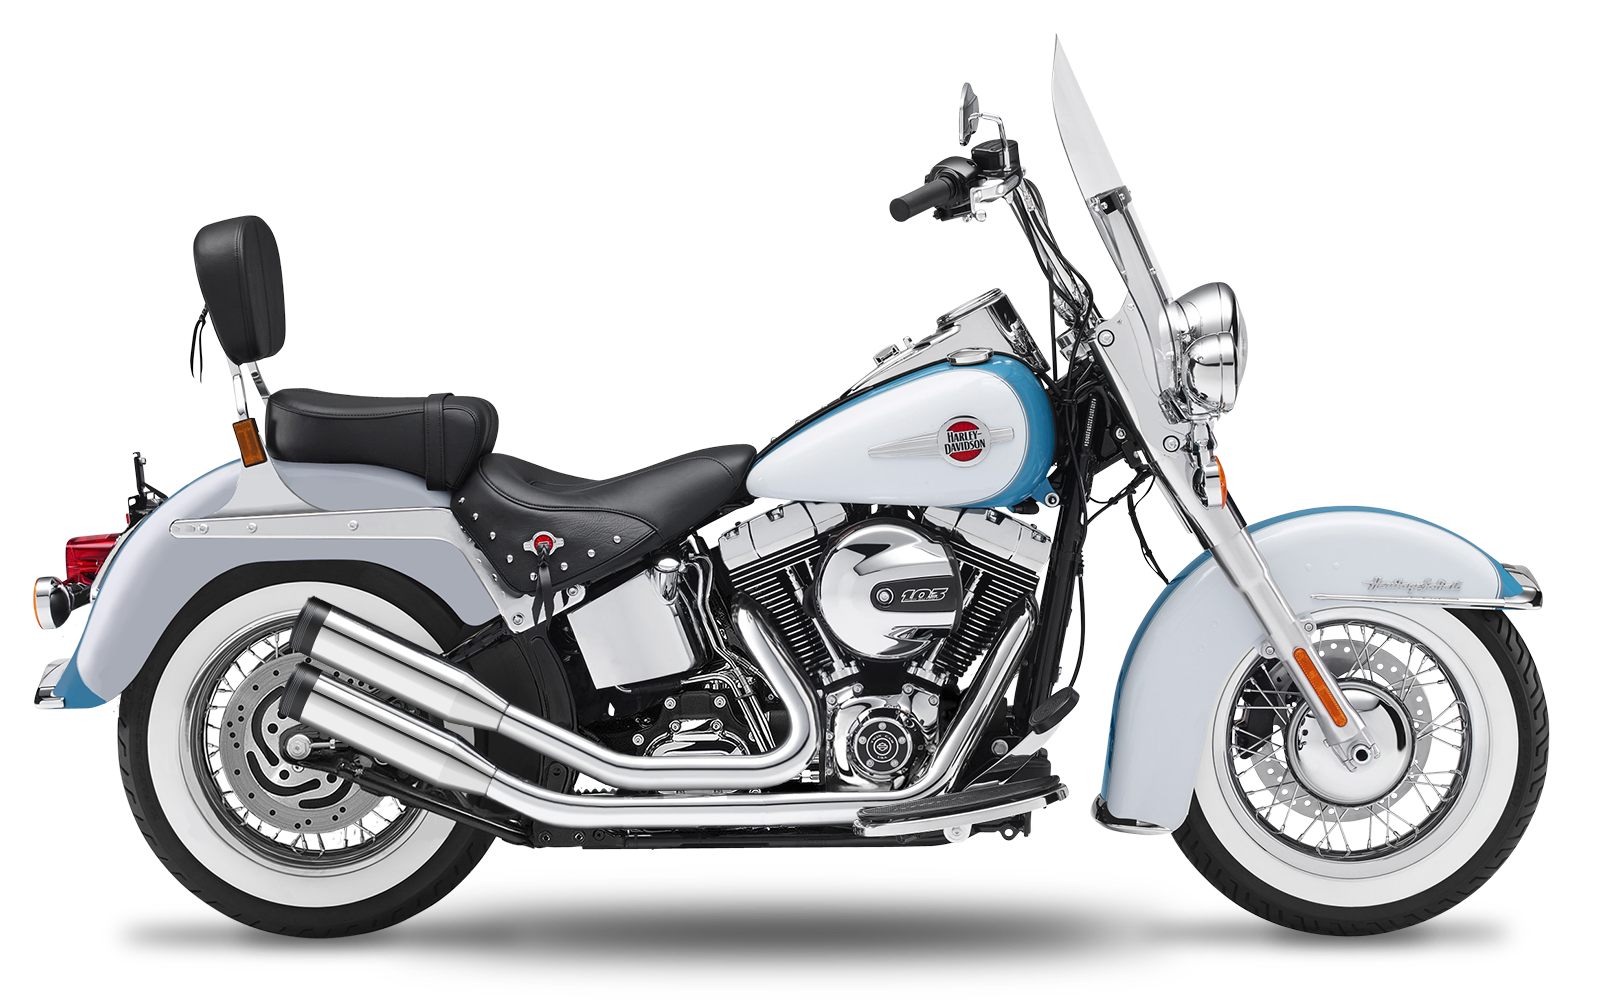 Softail - Heritage - TC88 - 2000-2006 - Complete systems